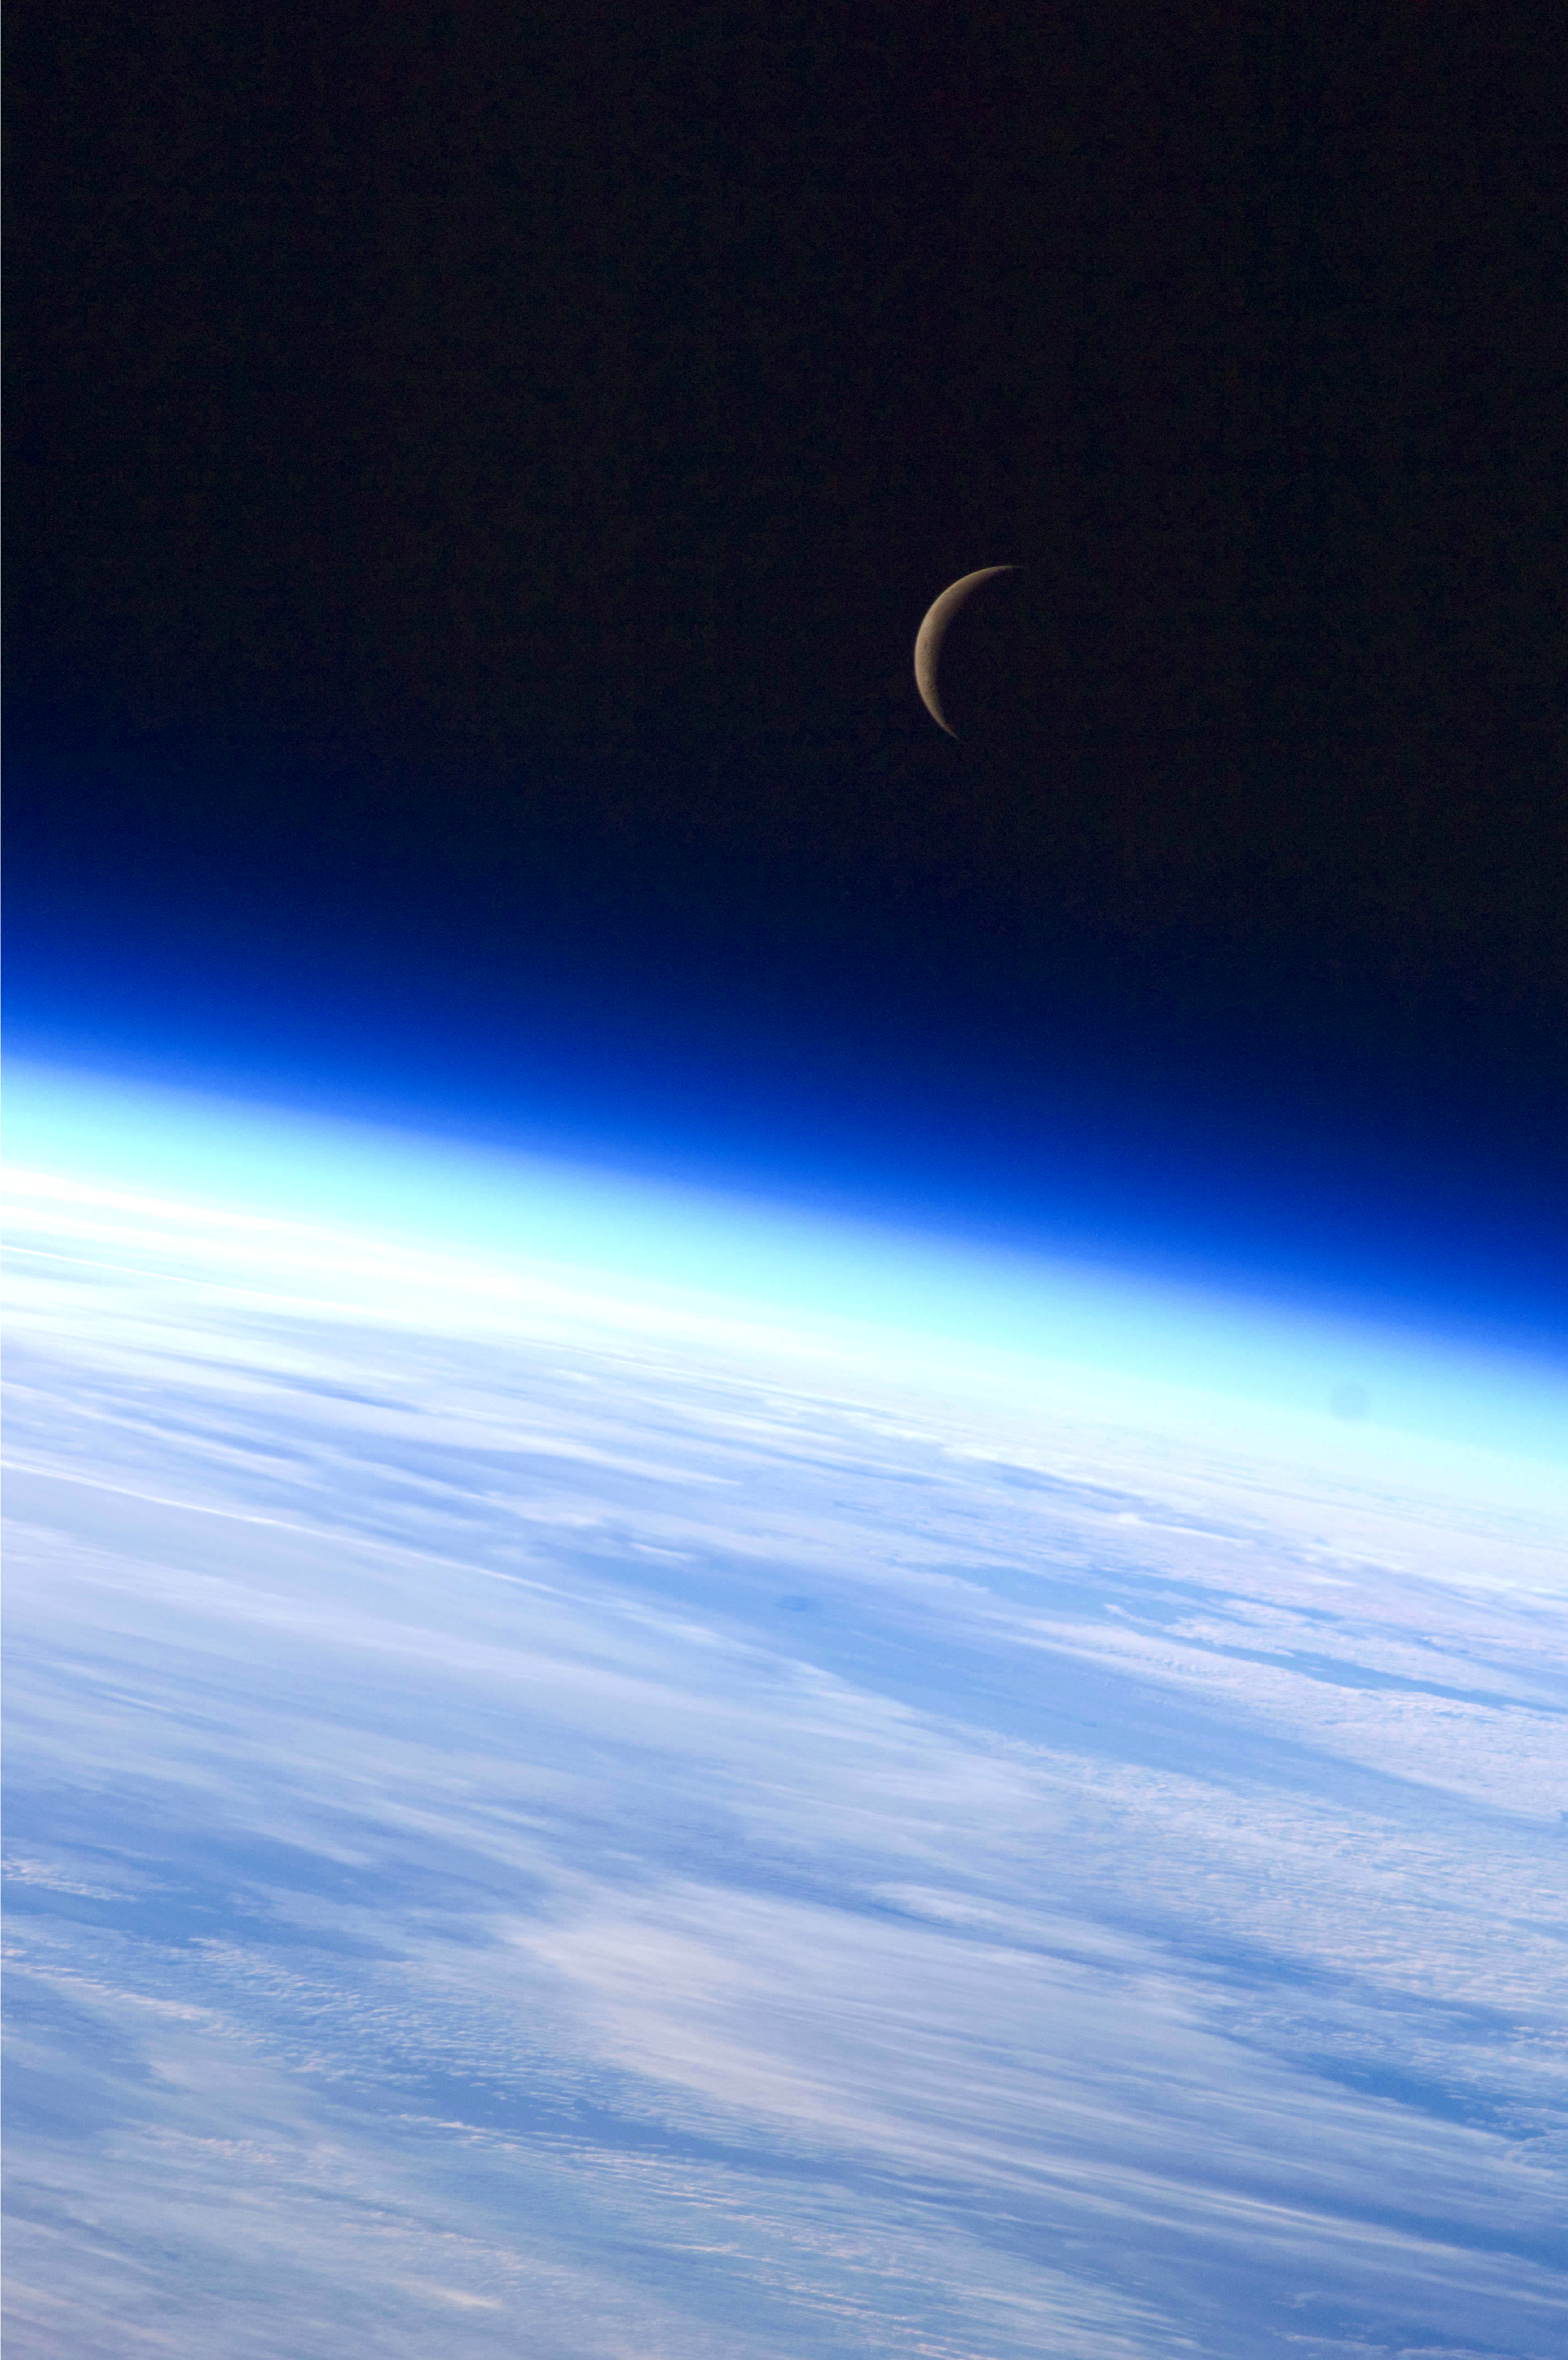 File:Expedition 24 Crescent Moon.jpg - Wikimedia Commons